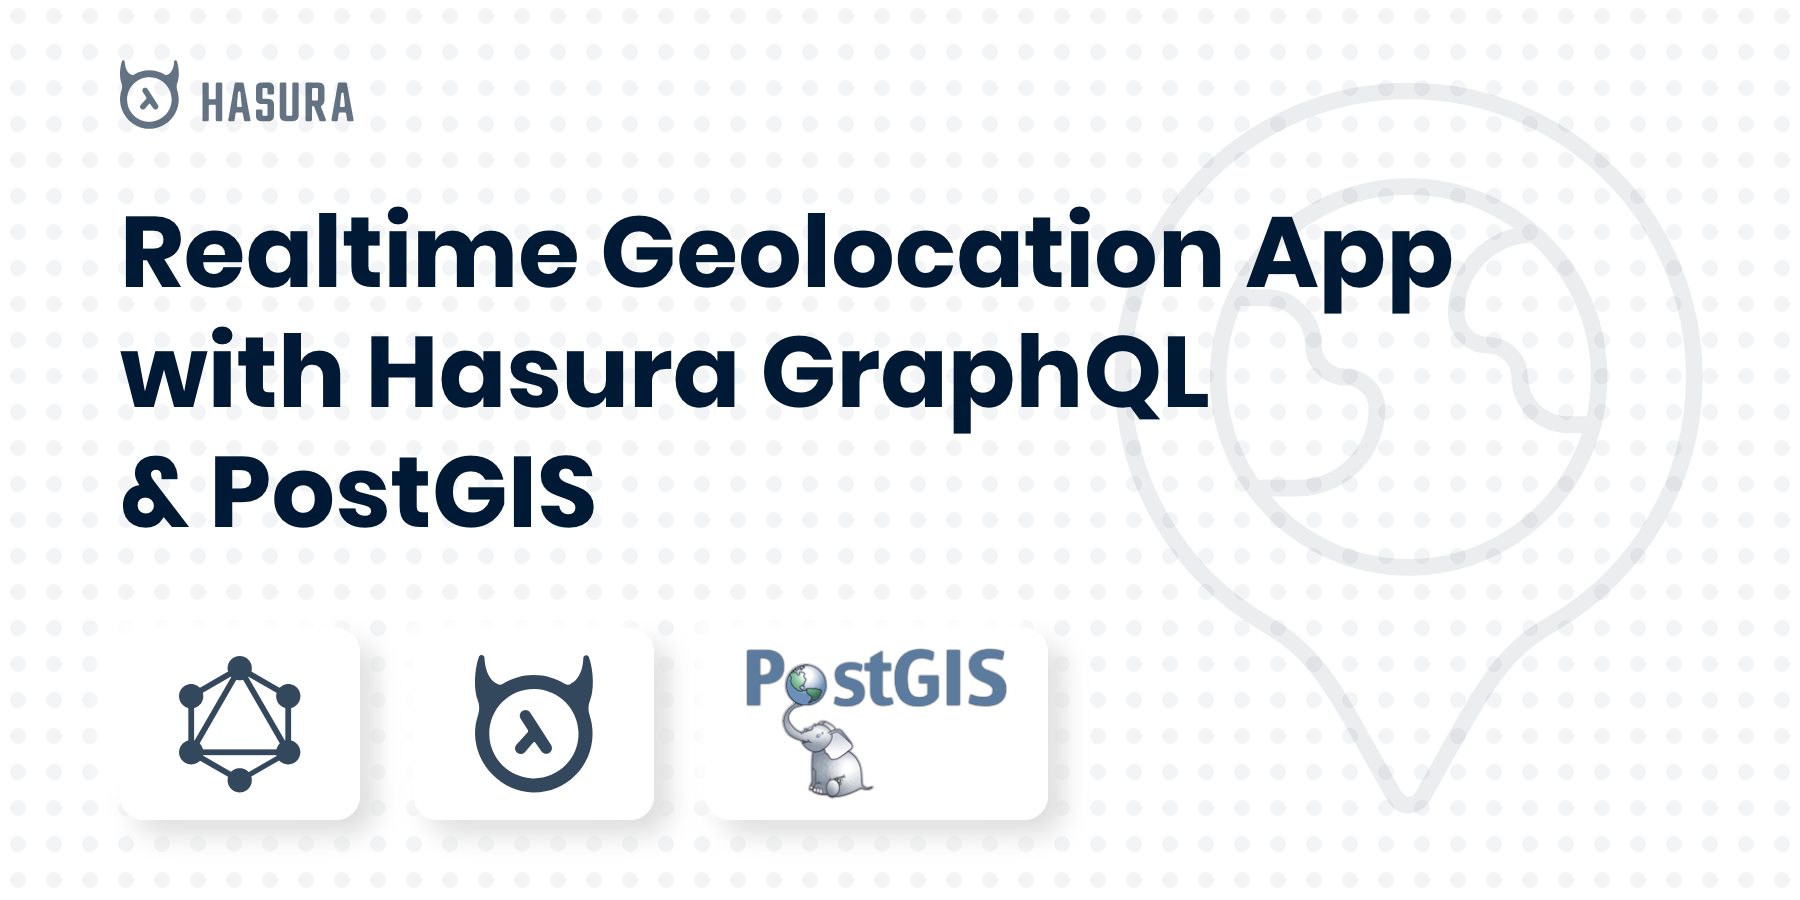 Building a Realtime Geolocation App with Hasura GraphQL and PostGIS